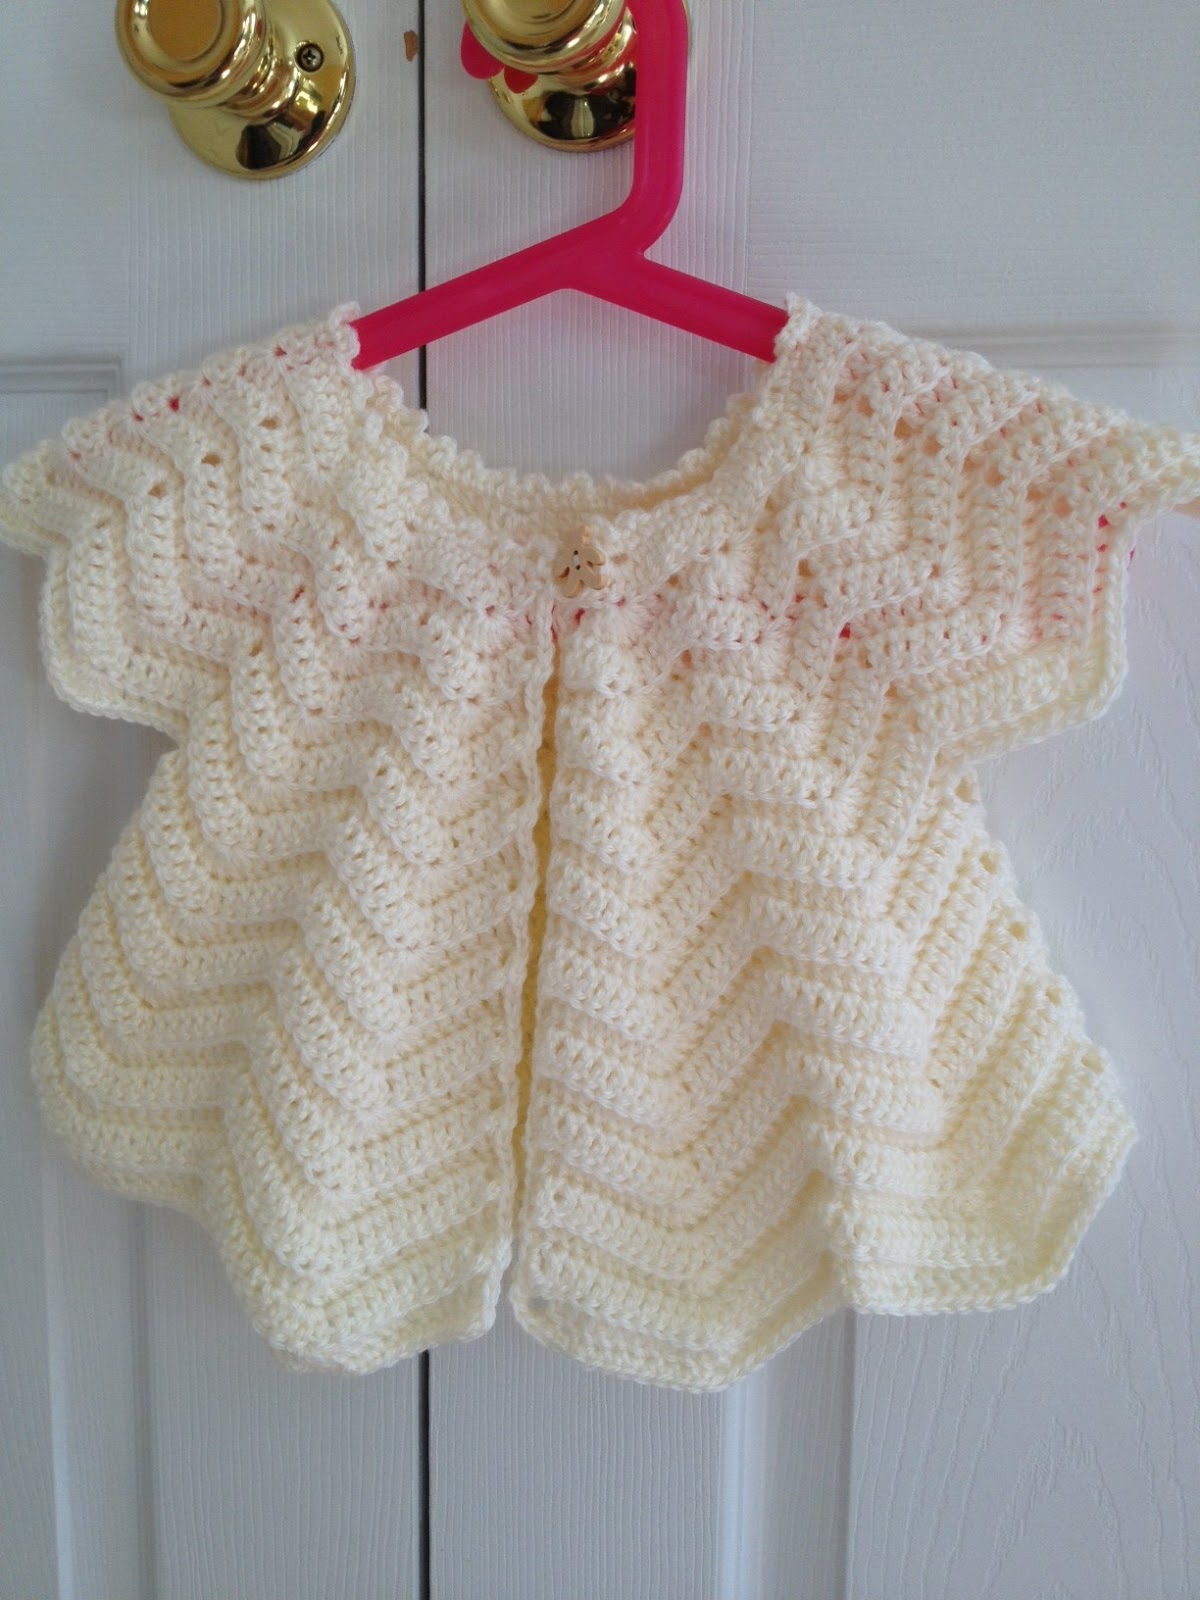 Free Crochet Jacket Patterns For Babies : Agnes Gurumi: Emmys Baby Cardigan (Free Pattern)